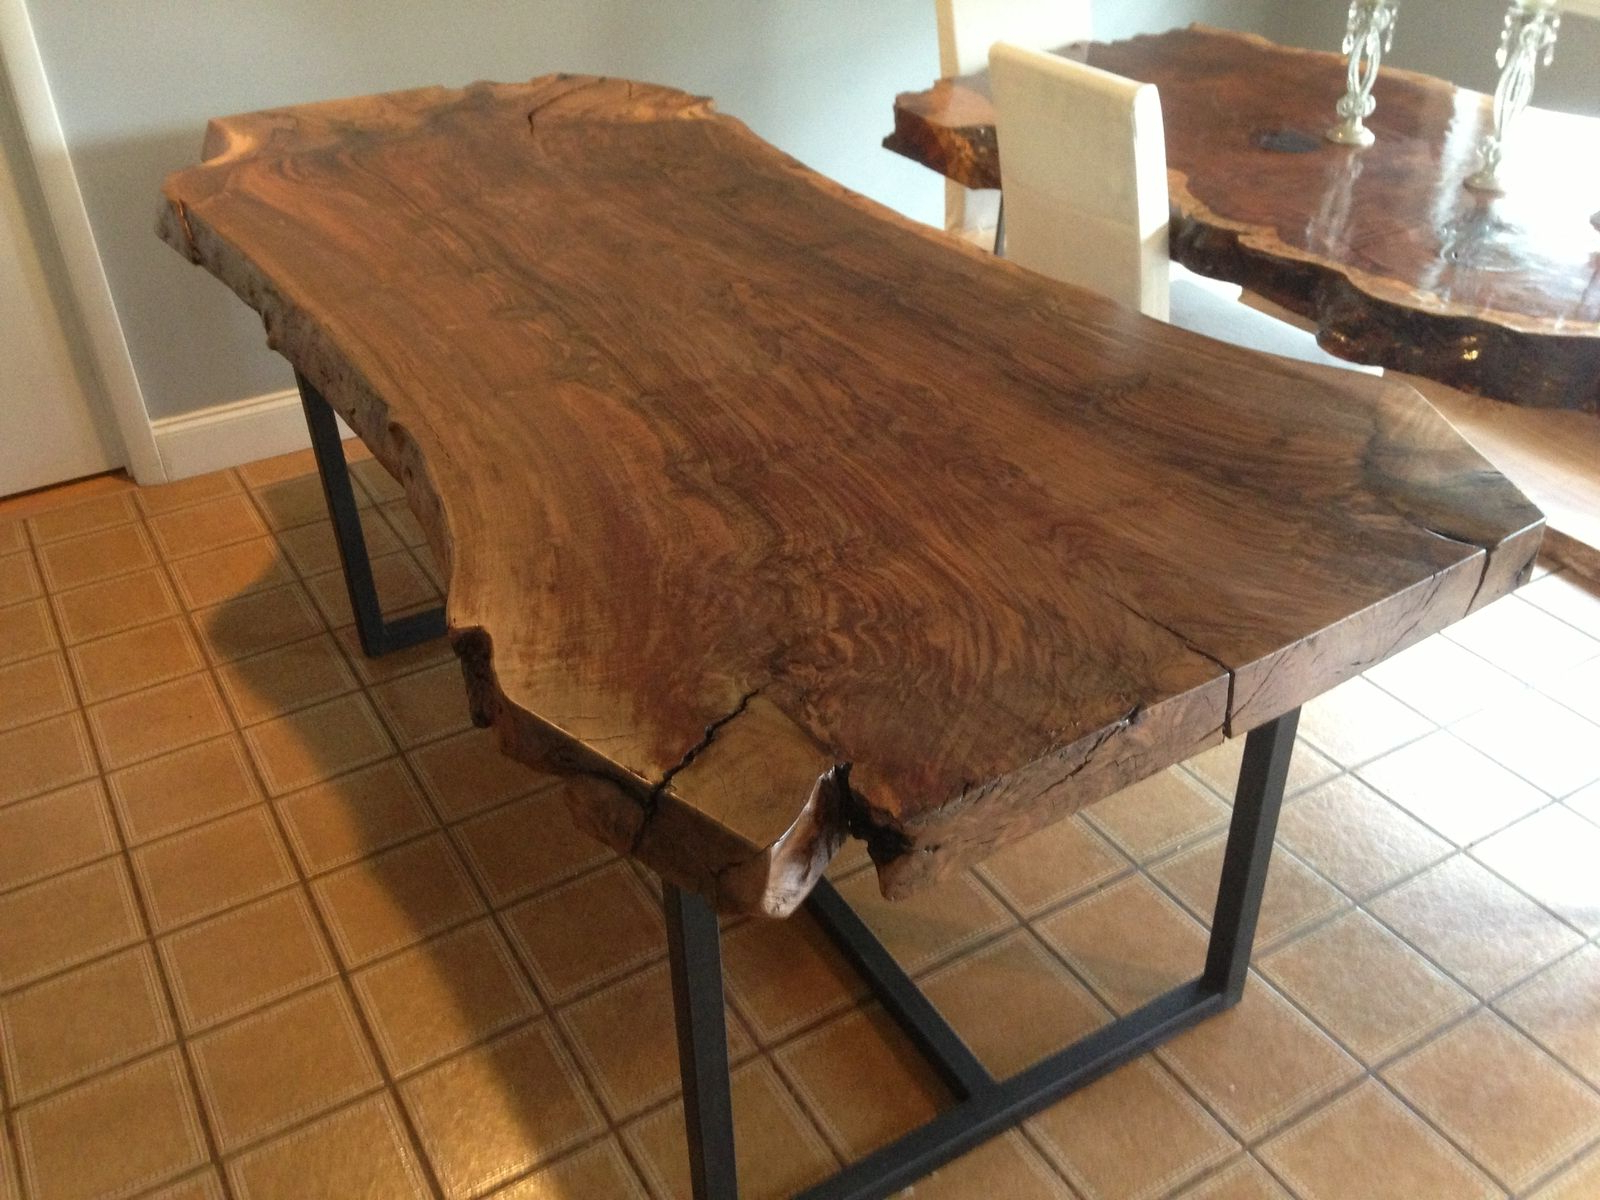 Well Liked Handmade Live Edge Claro Walnut Dining Tableozma Design In Walnut Finish Live Edge Wood Contemporary Dining Tables (View 3 of 30)